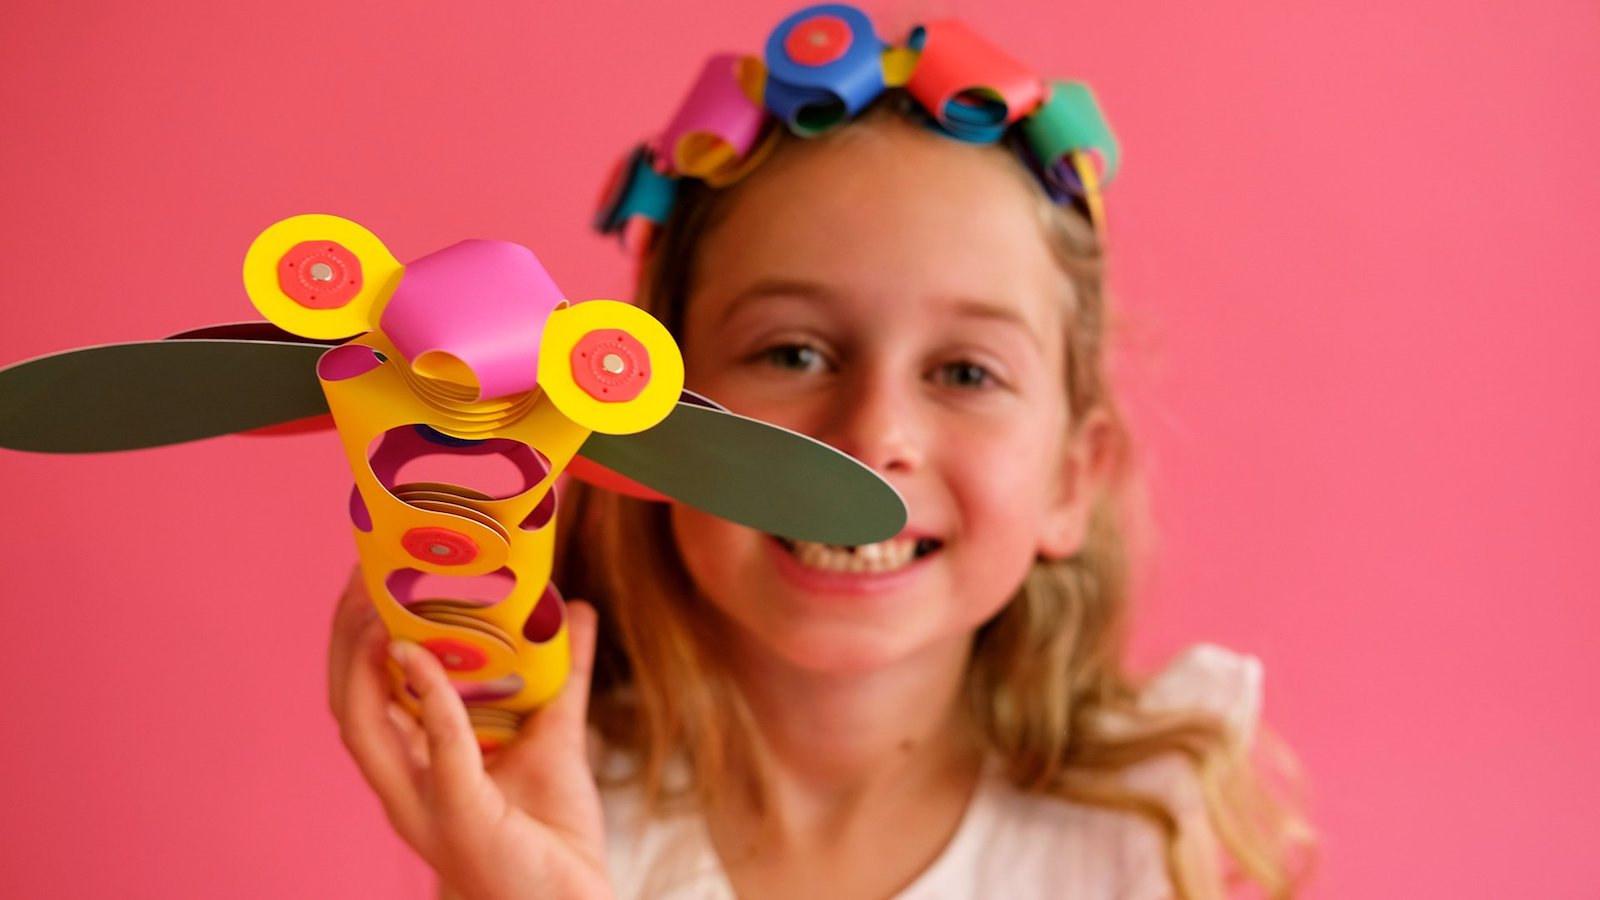 Clixo magnetic children's toys keep little ones entertained and sparks creativity